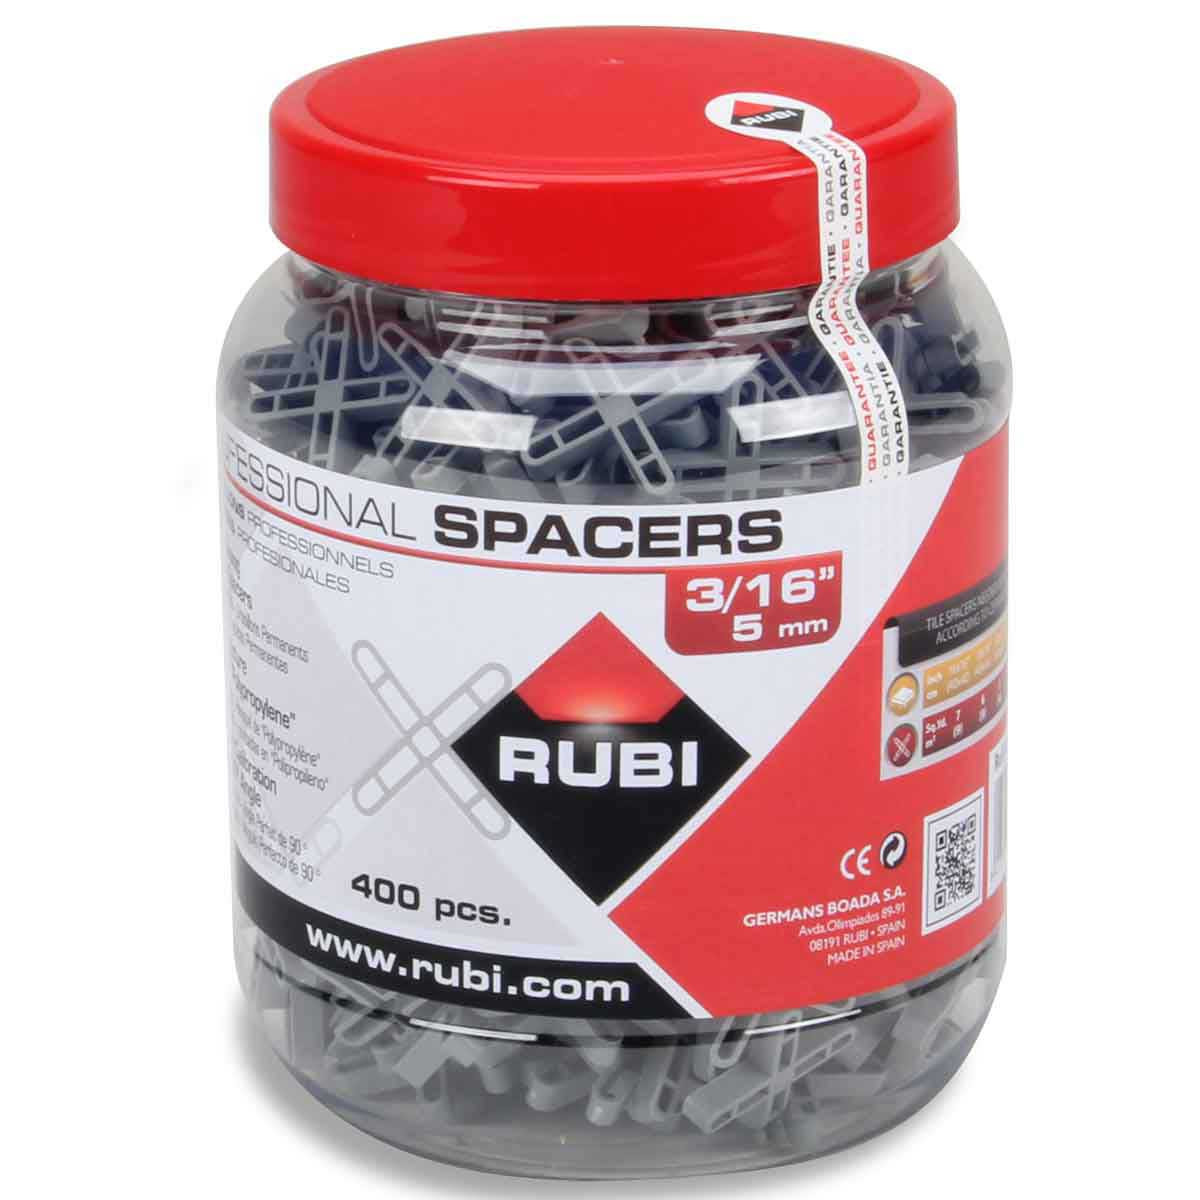 3/16th inch Rubi Leave-in Spacers Jars 02282